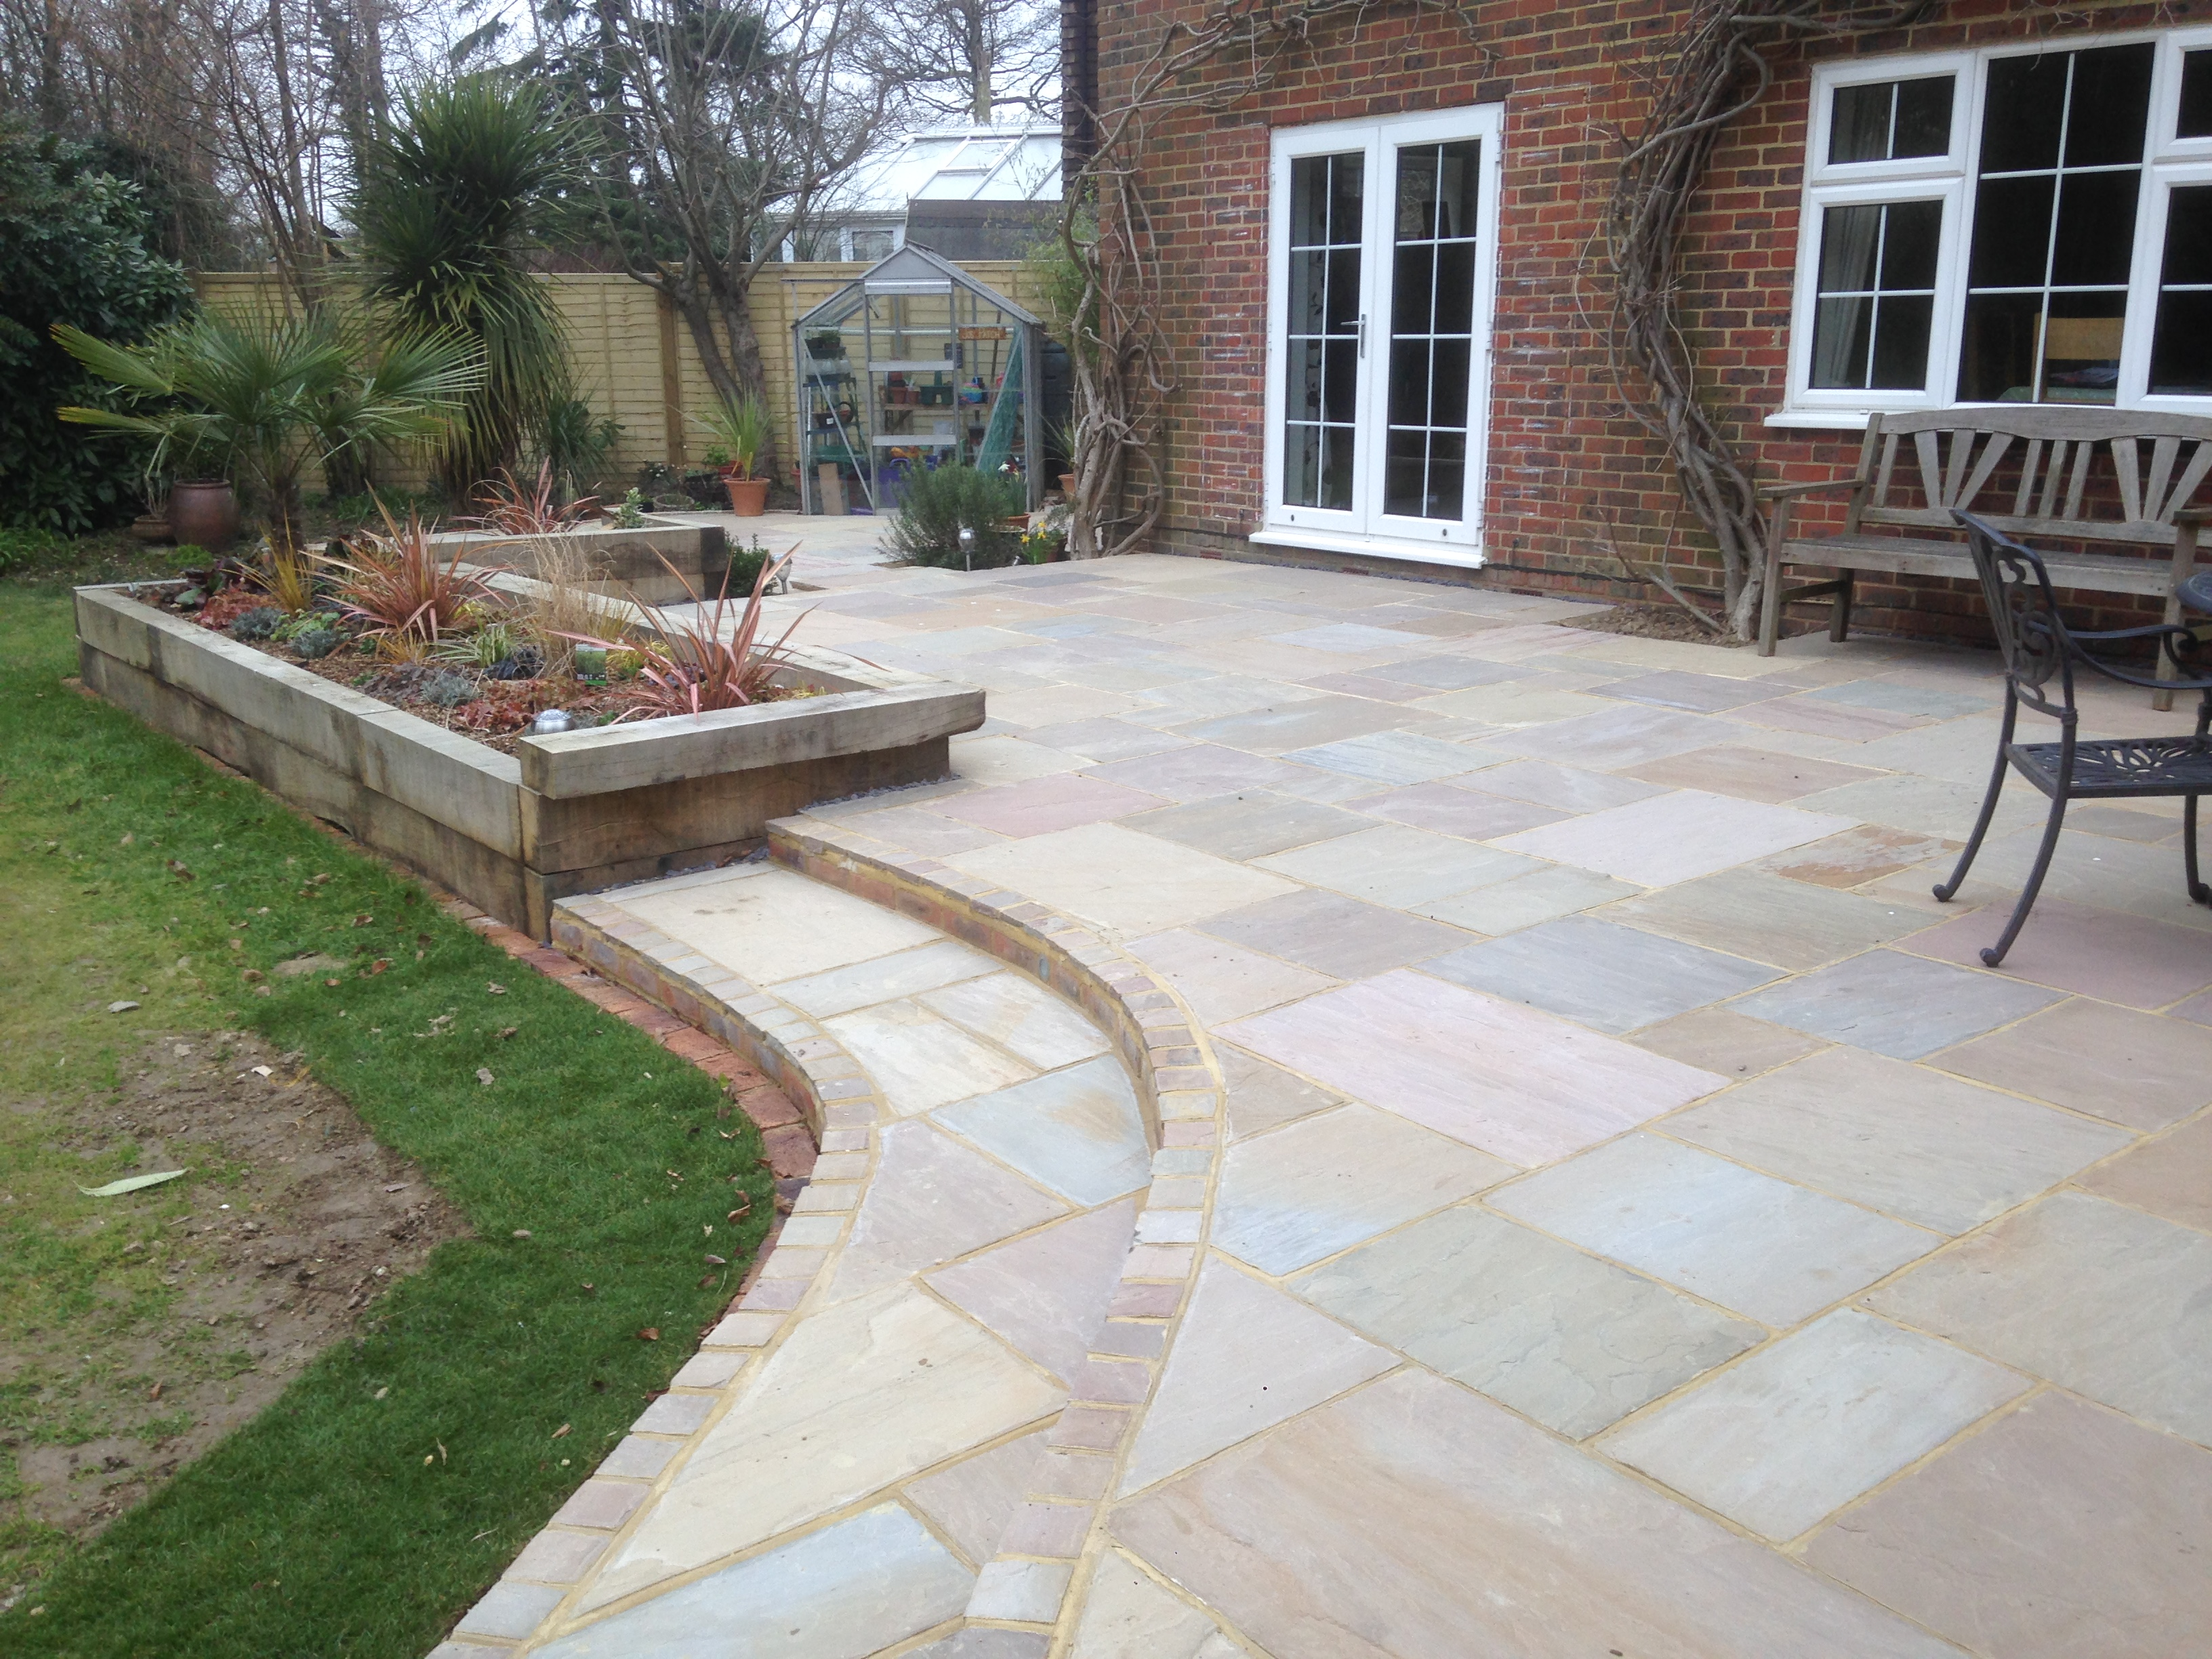 Patio with steps and raised flower beds near horsham